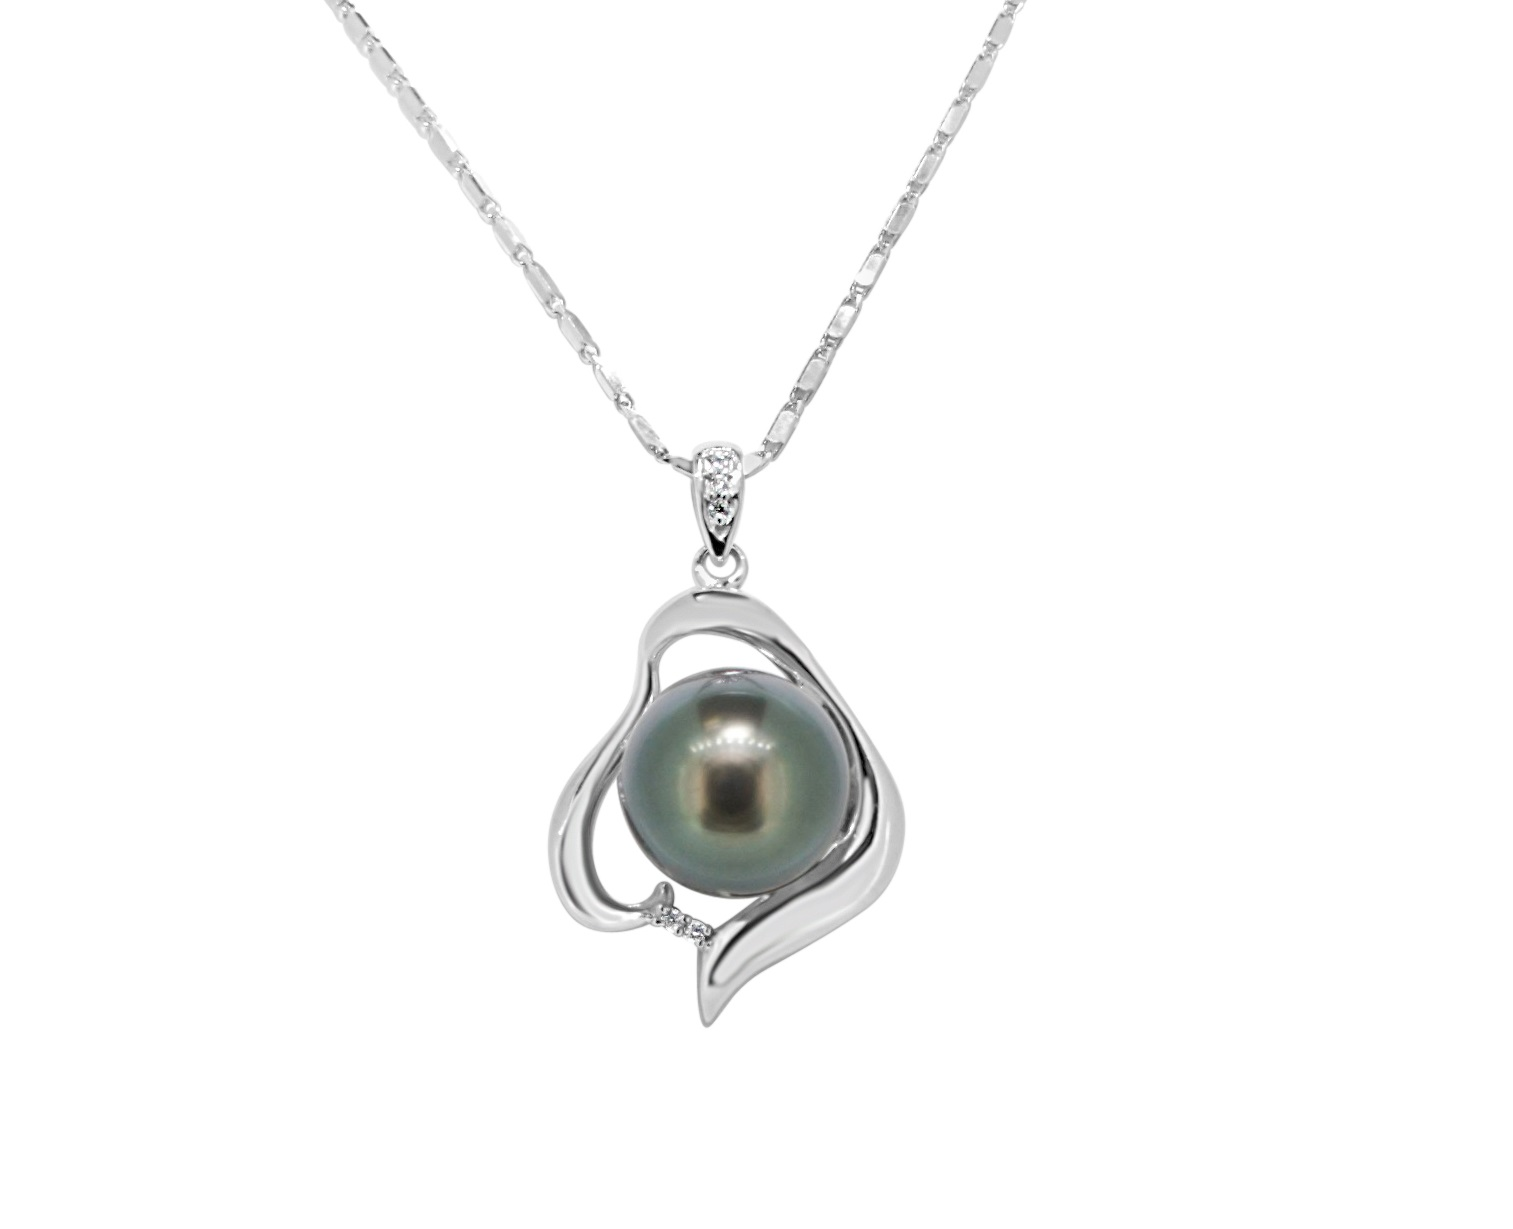 Pendant - 14k White Gold Custom Made Pearl Pendant with Center 11.50mm Cultured Tahitian Pearl with (5) .025ct tw Round Brilliant Cut Diamonds Pave Set  Treatment Pearl Natural